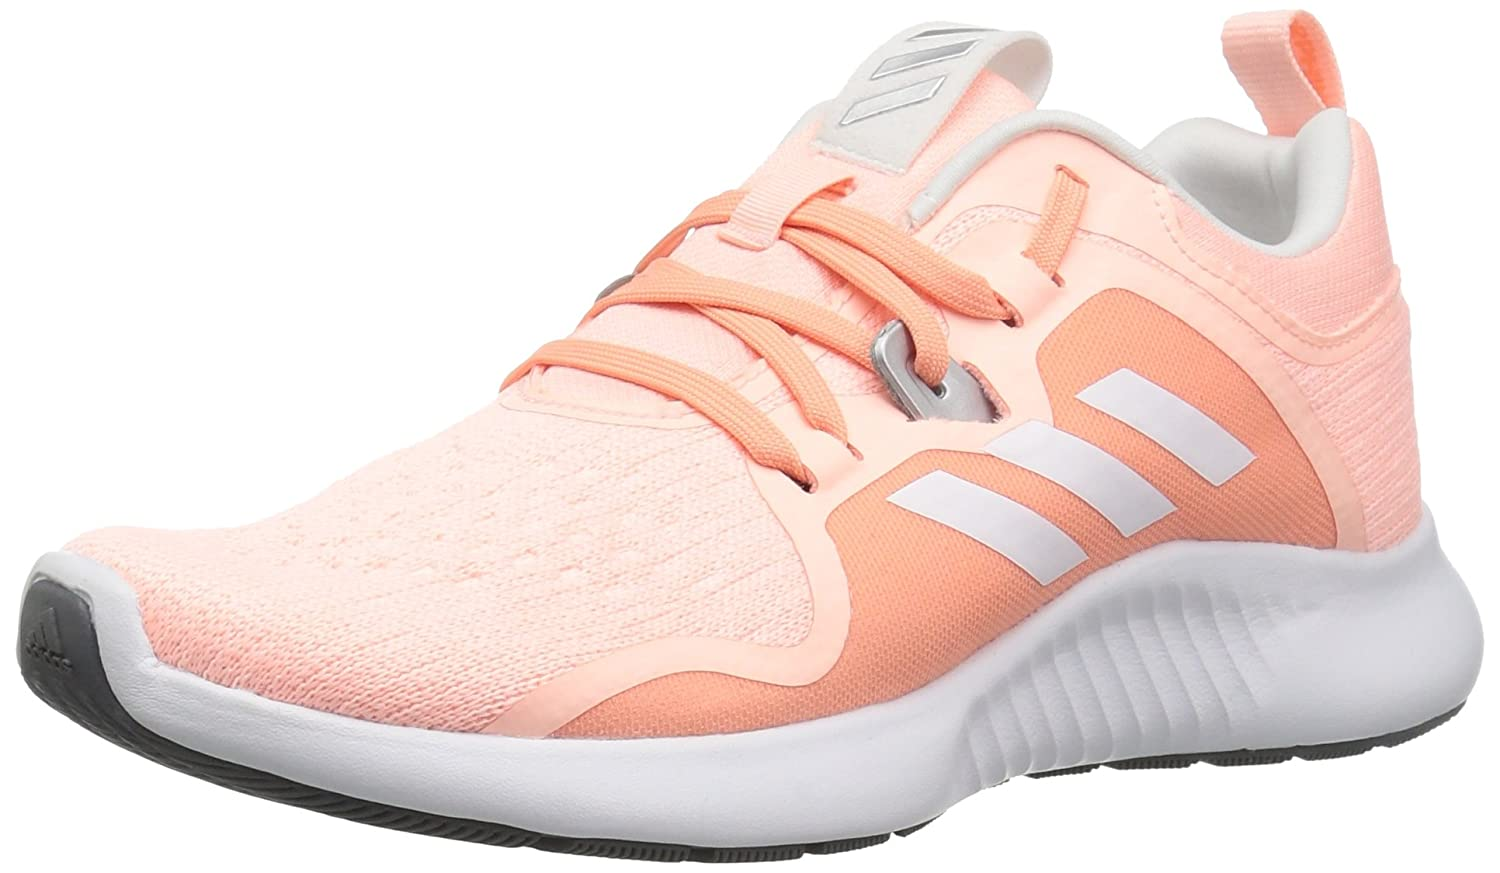 adidas Originals Women's Edgebounce Running Shoe B077XMWQLT 11 B(M) US|Clear Orange/White/Copper Metallic